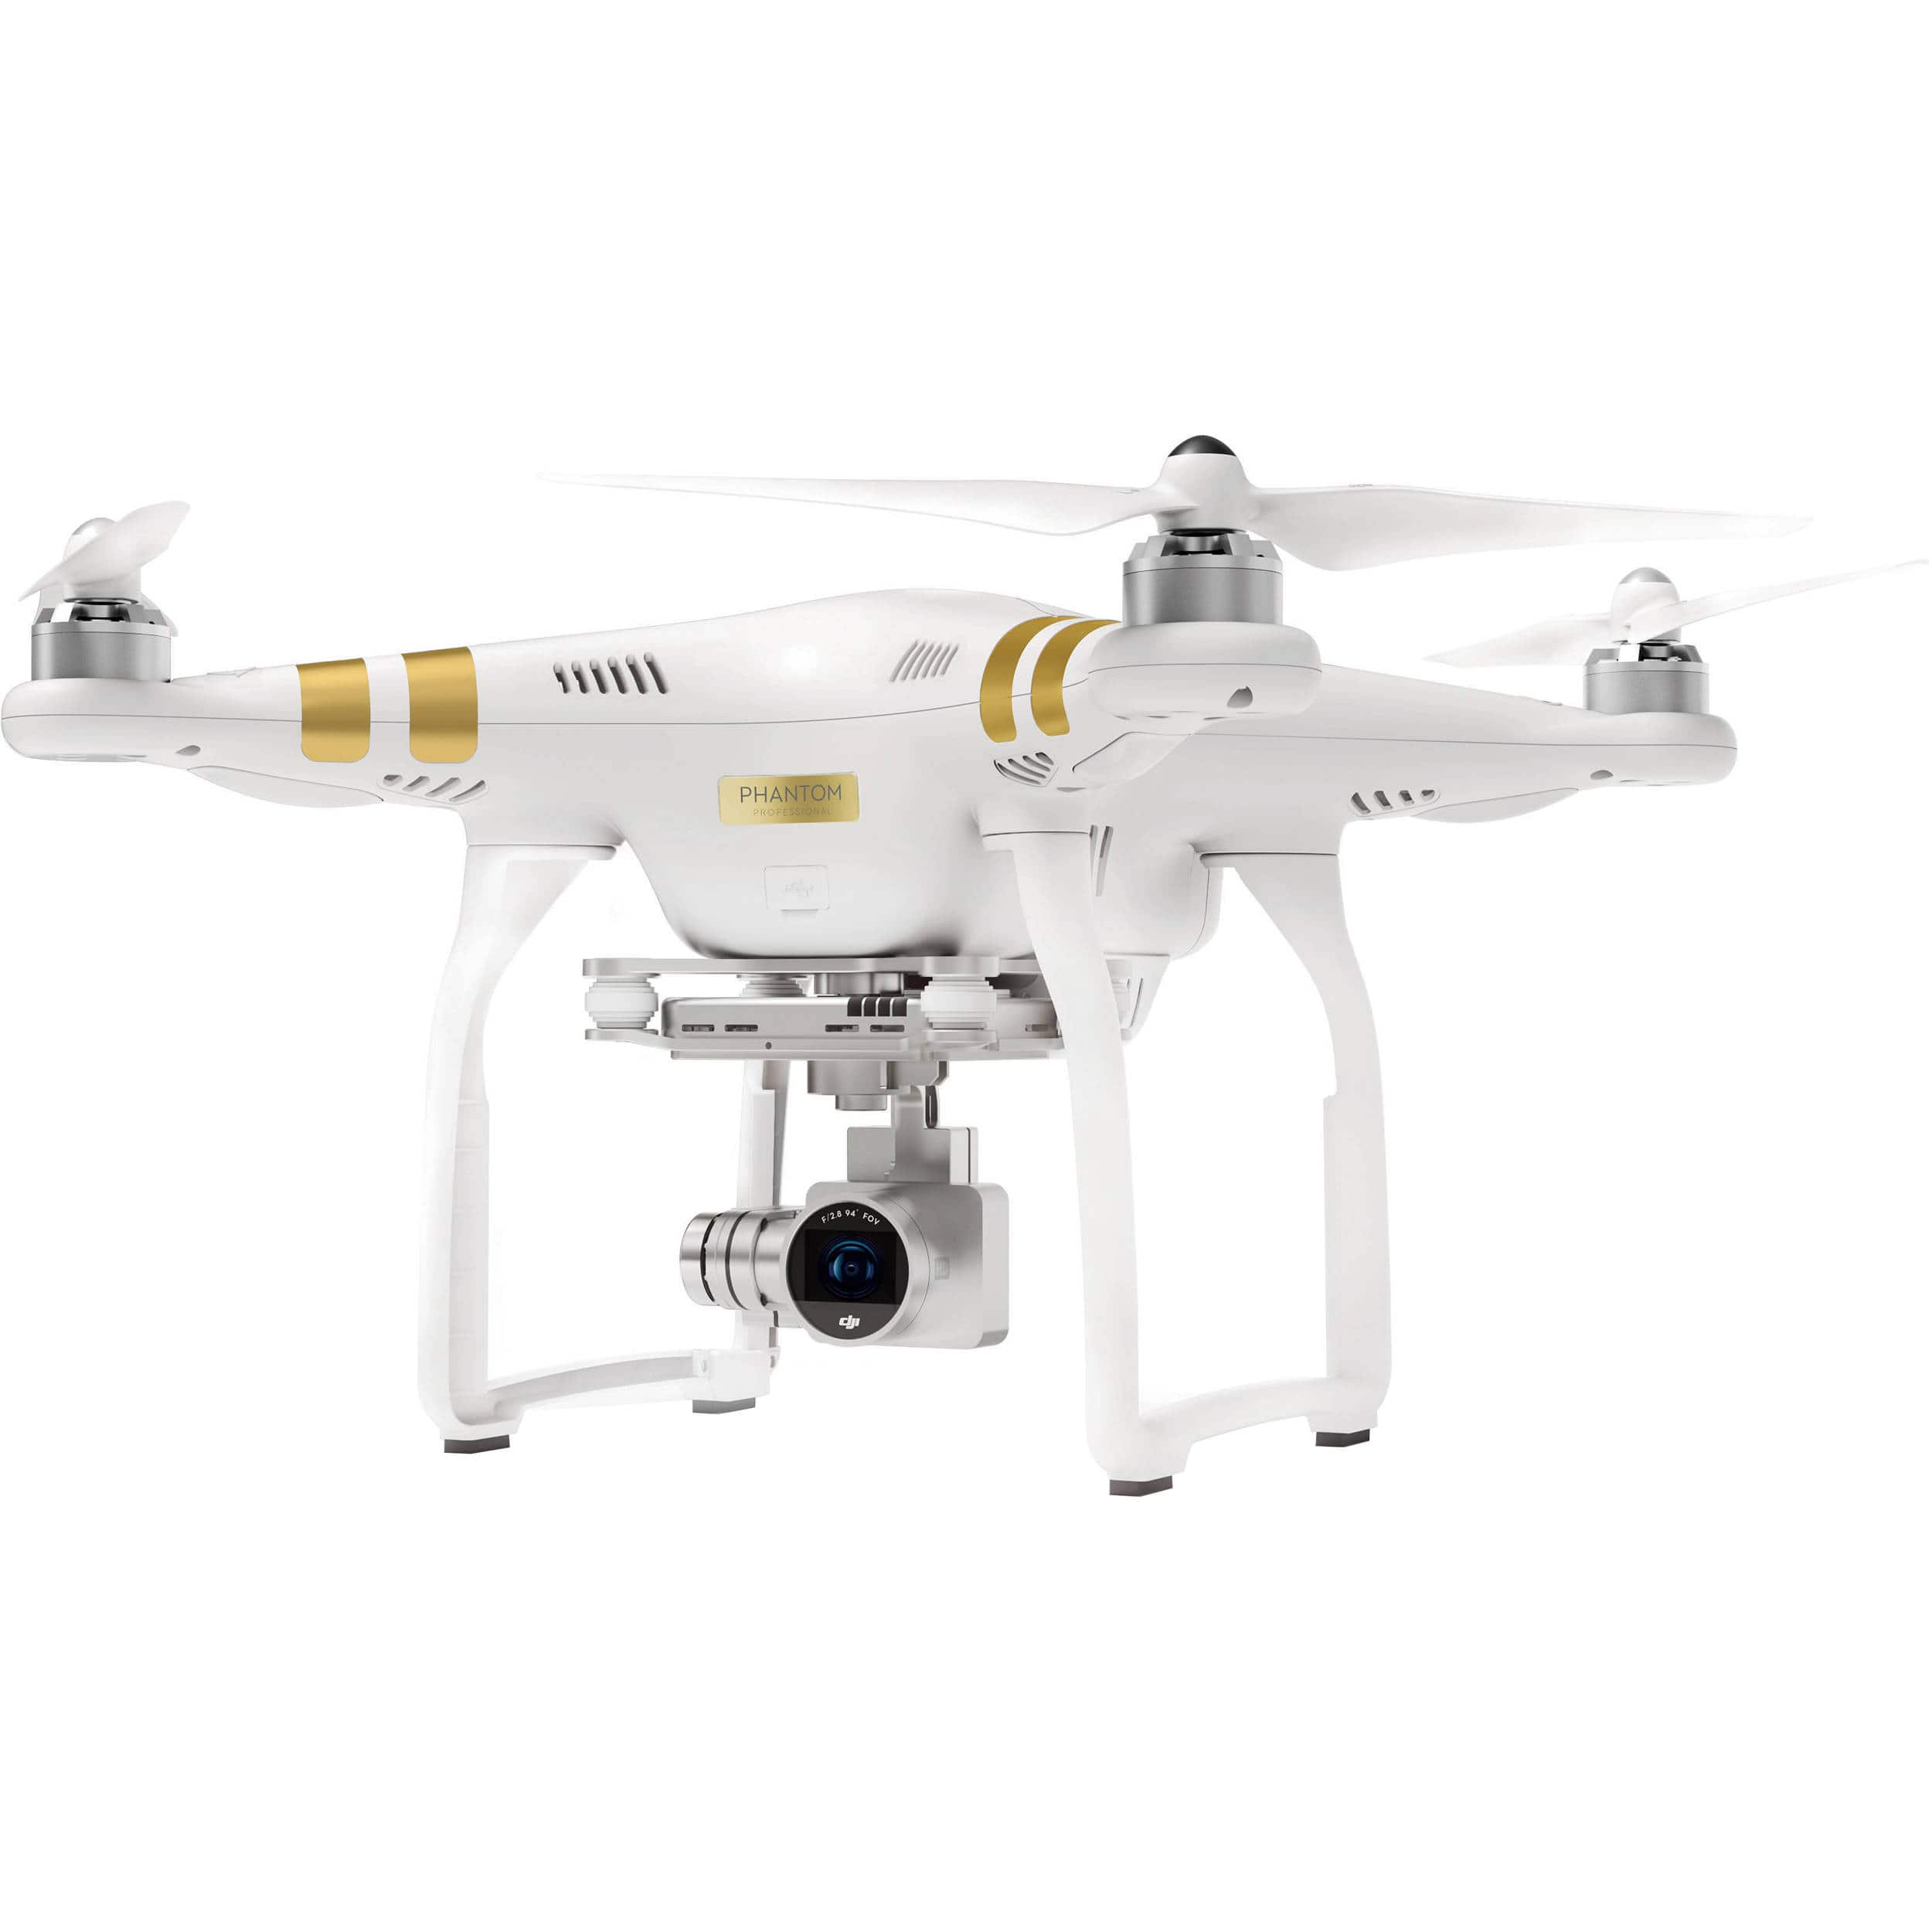 DJI phantom 3 professional $699 plus tax at microcenter - in store only